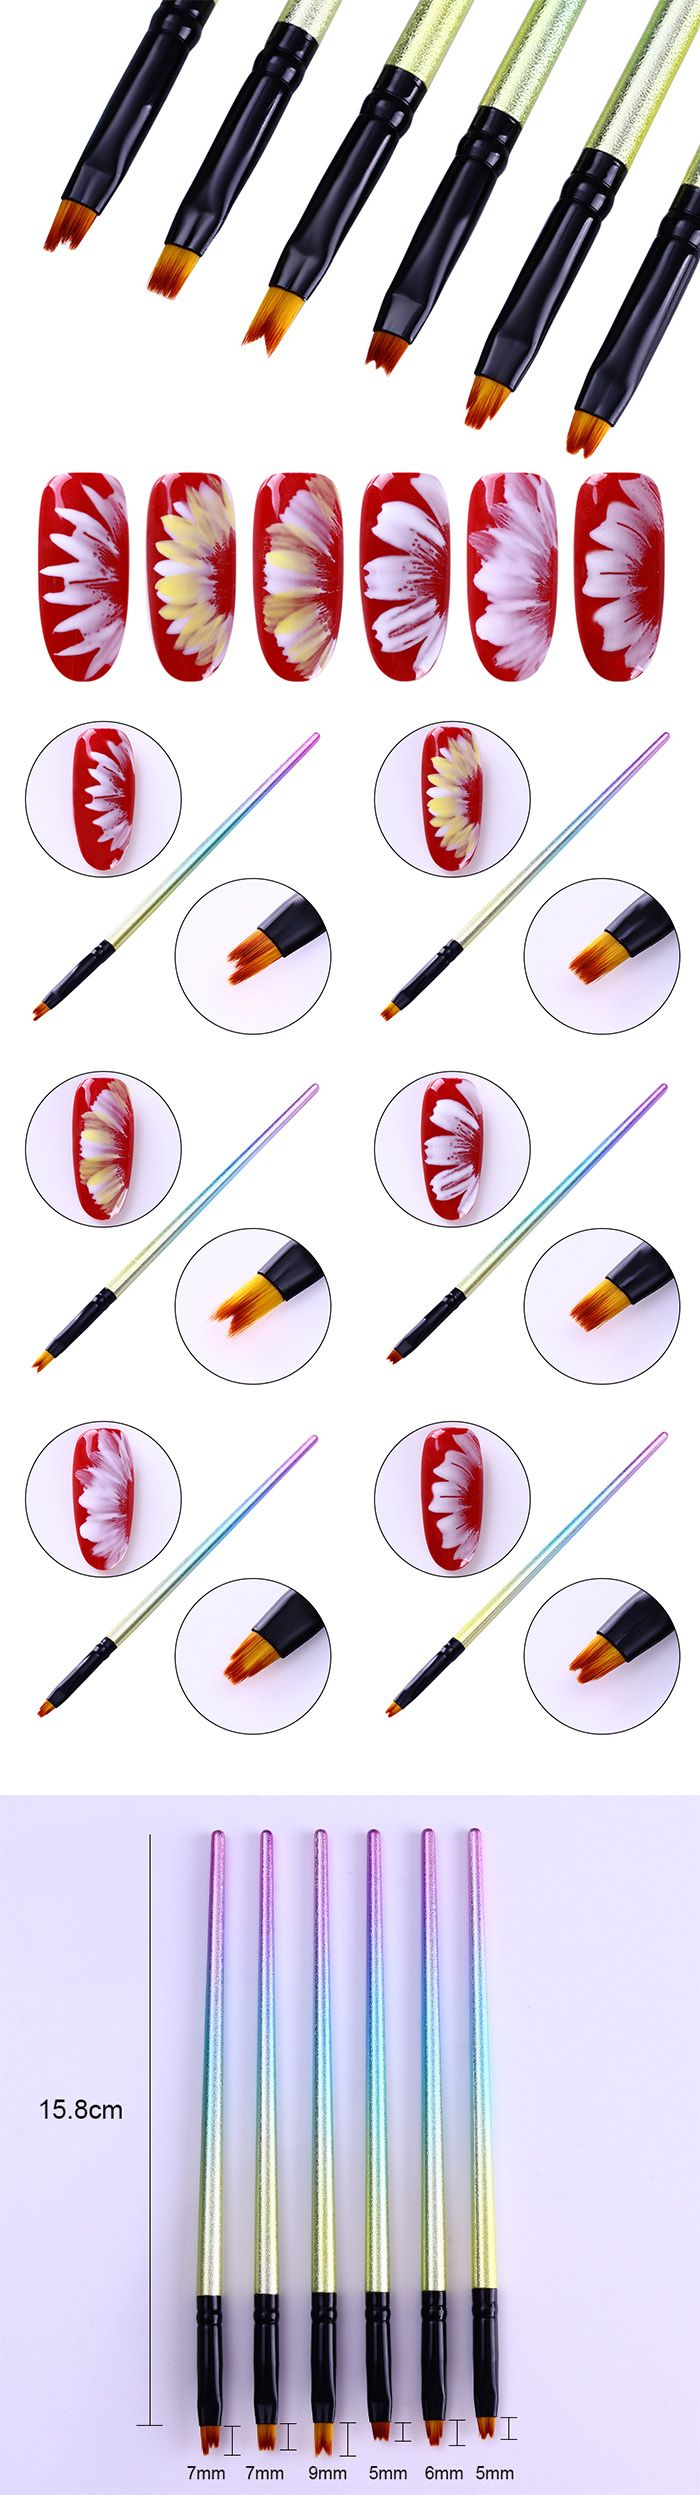 $7.99 6 Pcs Gradient Painting Brush UV Gel Flower Drawing Pen Unicorn Black Handle Manicure Nail Art Tool - BornPrettyStore.com